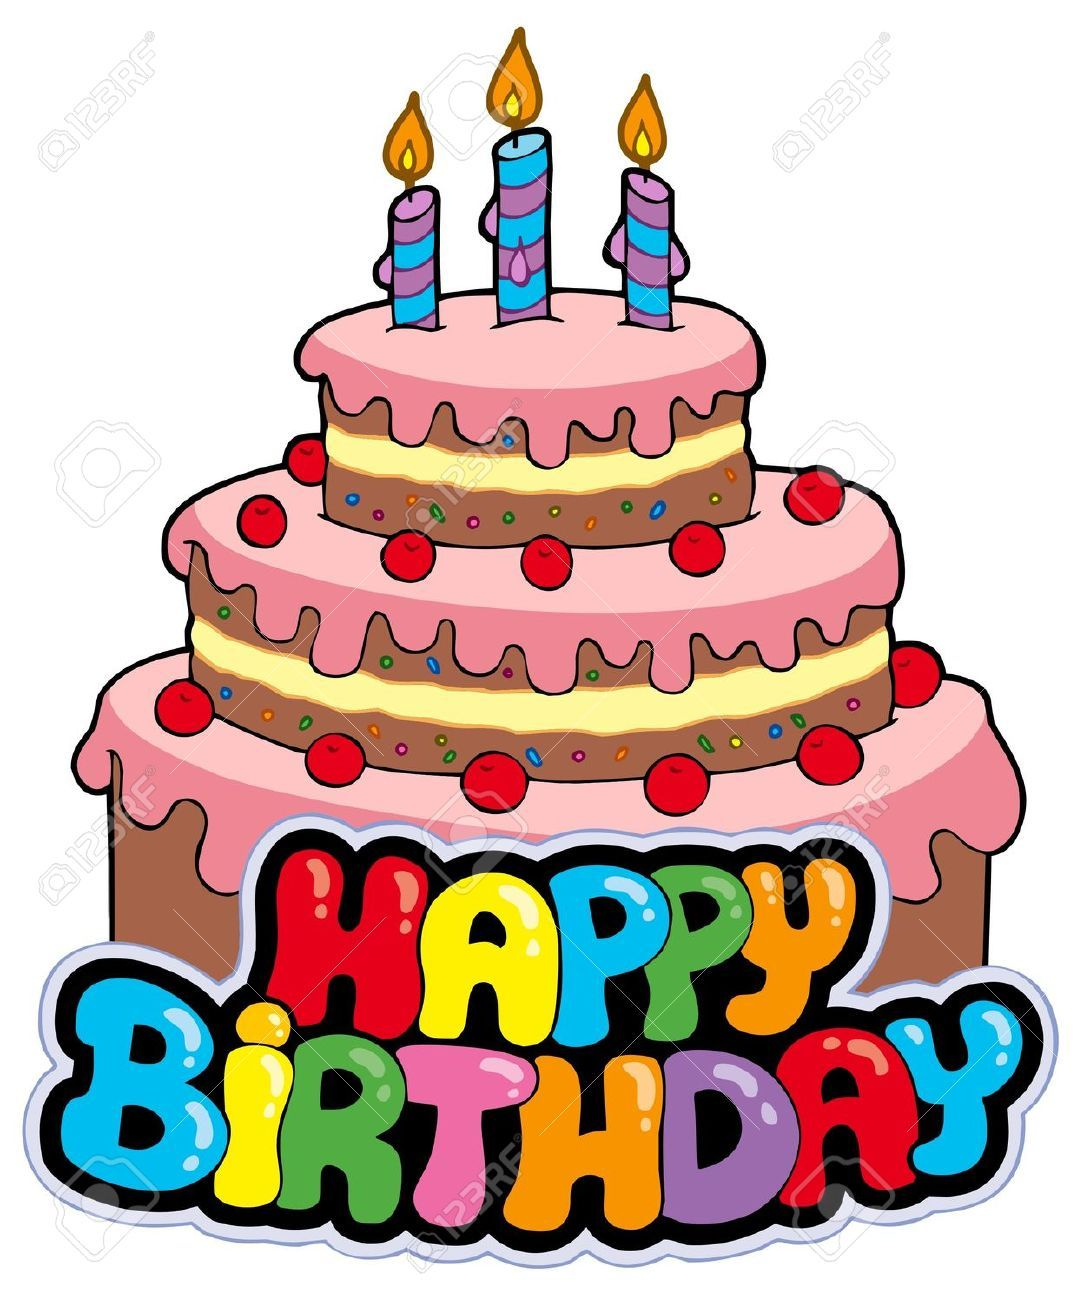 wishing a very happy birthday to diana gabaldon author of the rh pinterest com happy birthday cake clipart transparent happy birthday cake clipart for men